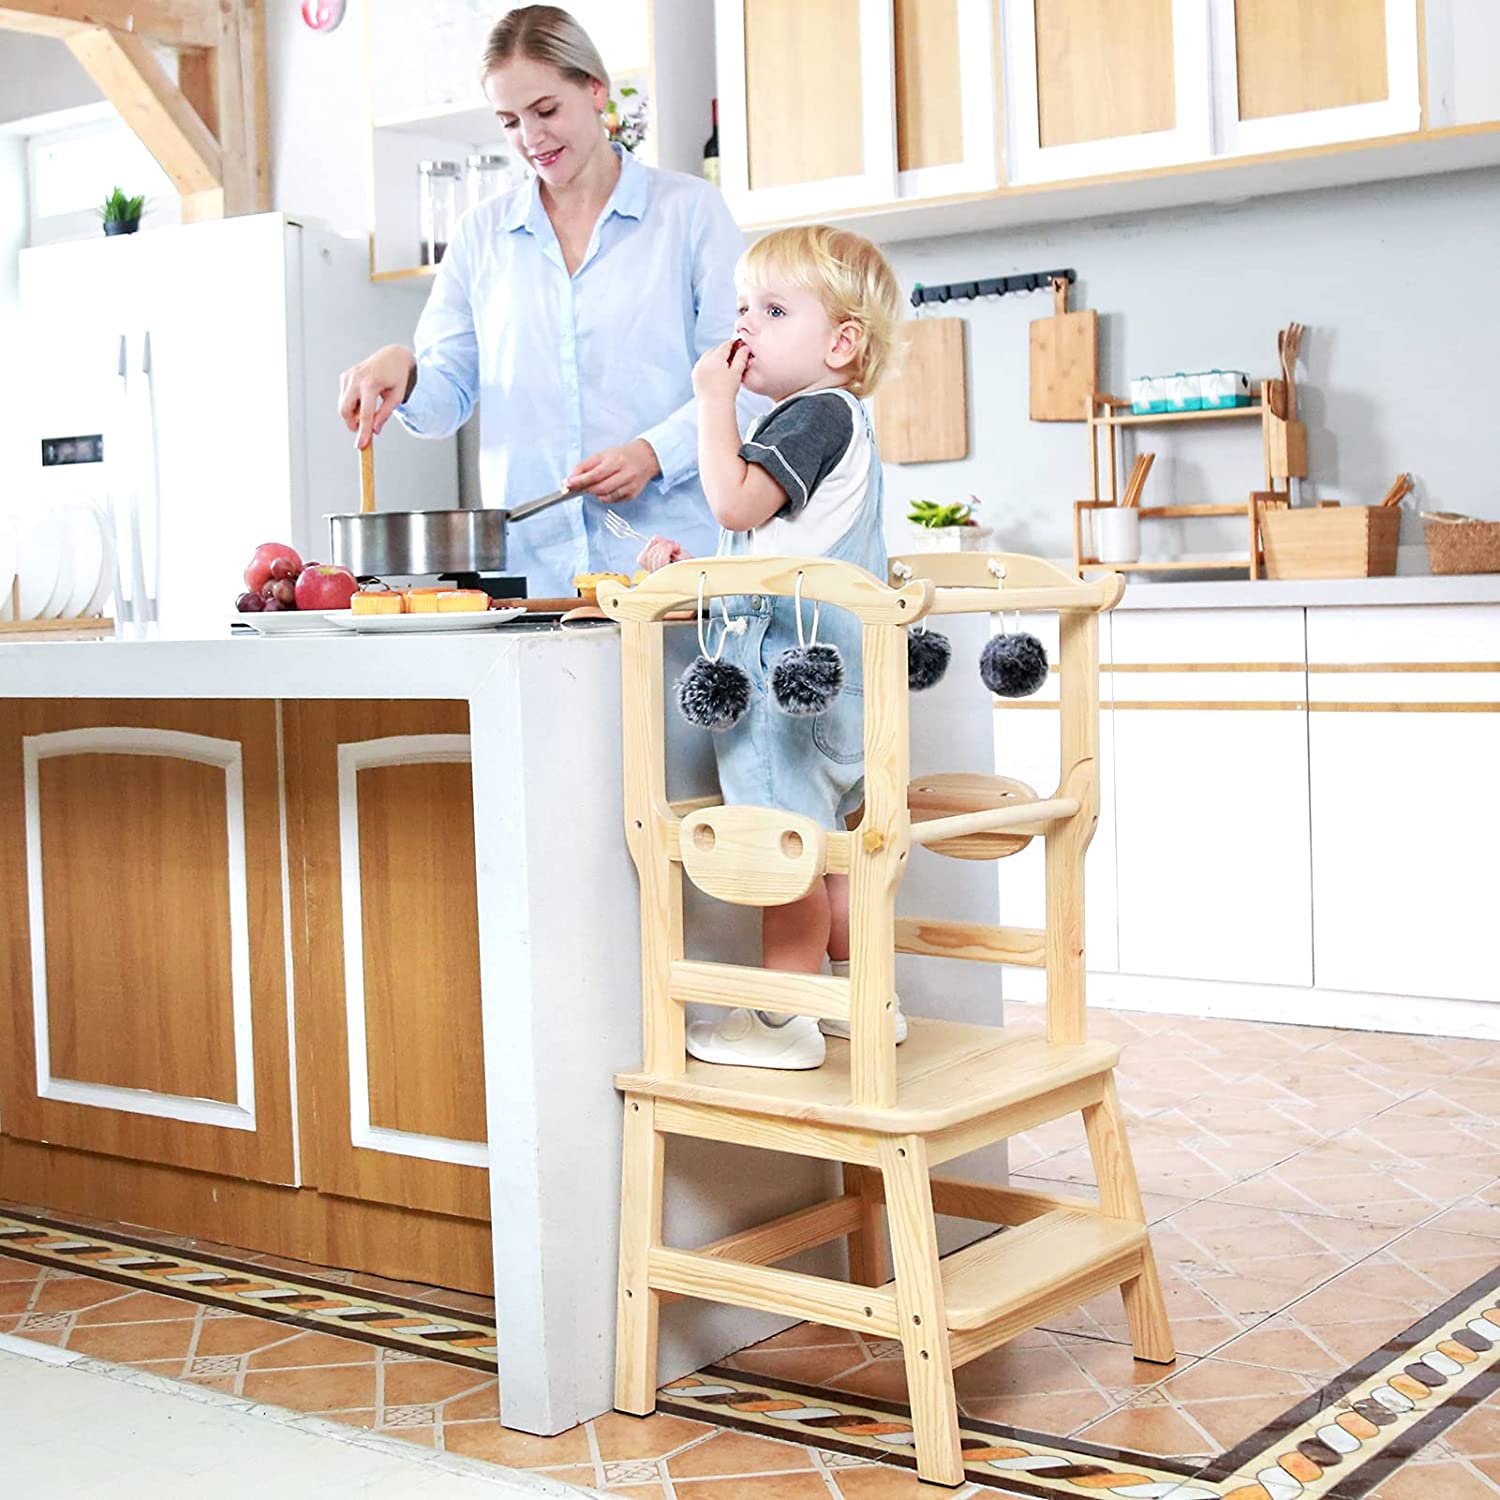 PP OPOUNT Kitchen Step Stool Children, Natural Wooden Montessori Toddler Step with Safety Rail, Cow Style, Solid Wood